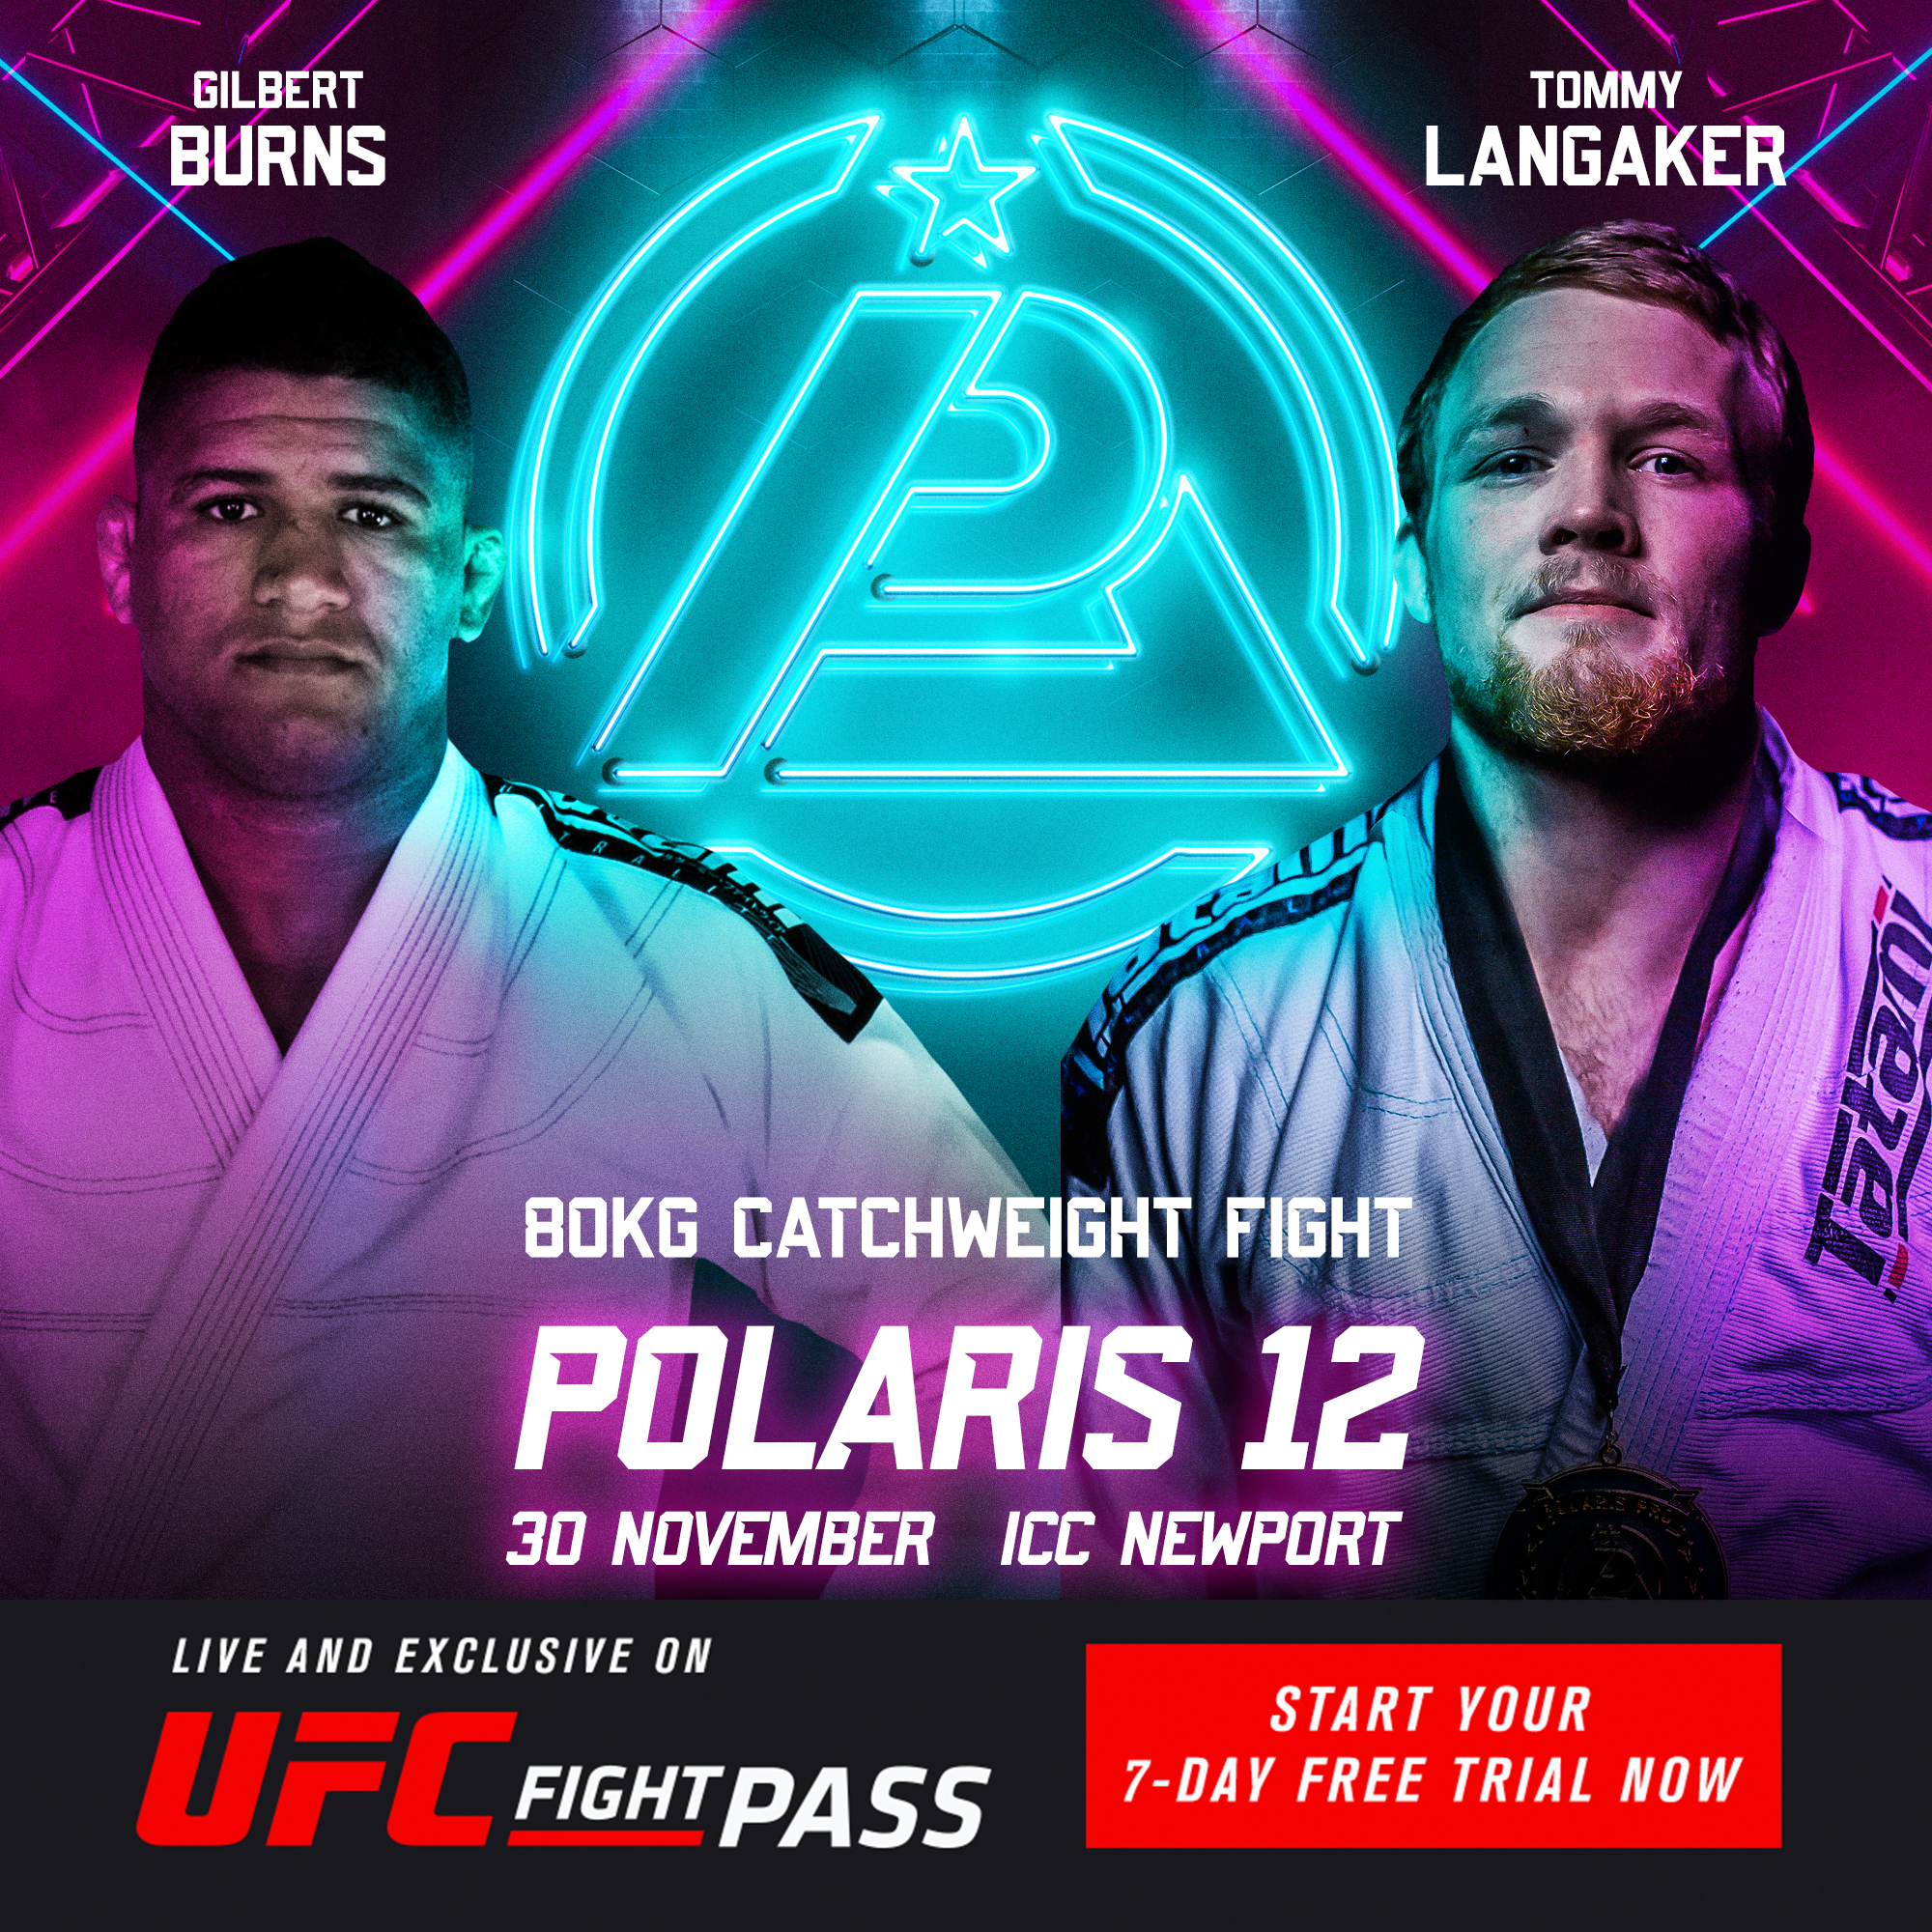 Polaris 12 - Gilbert Burns VS Tommy Langaker